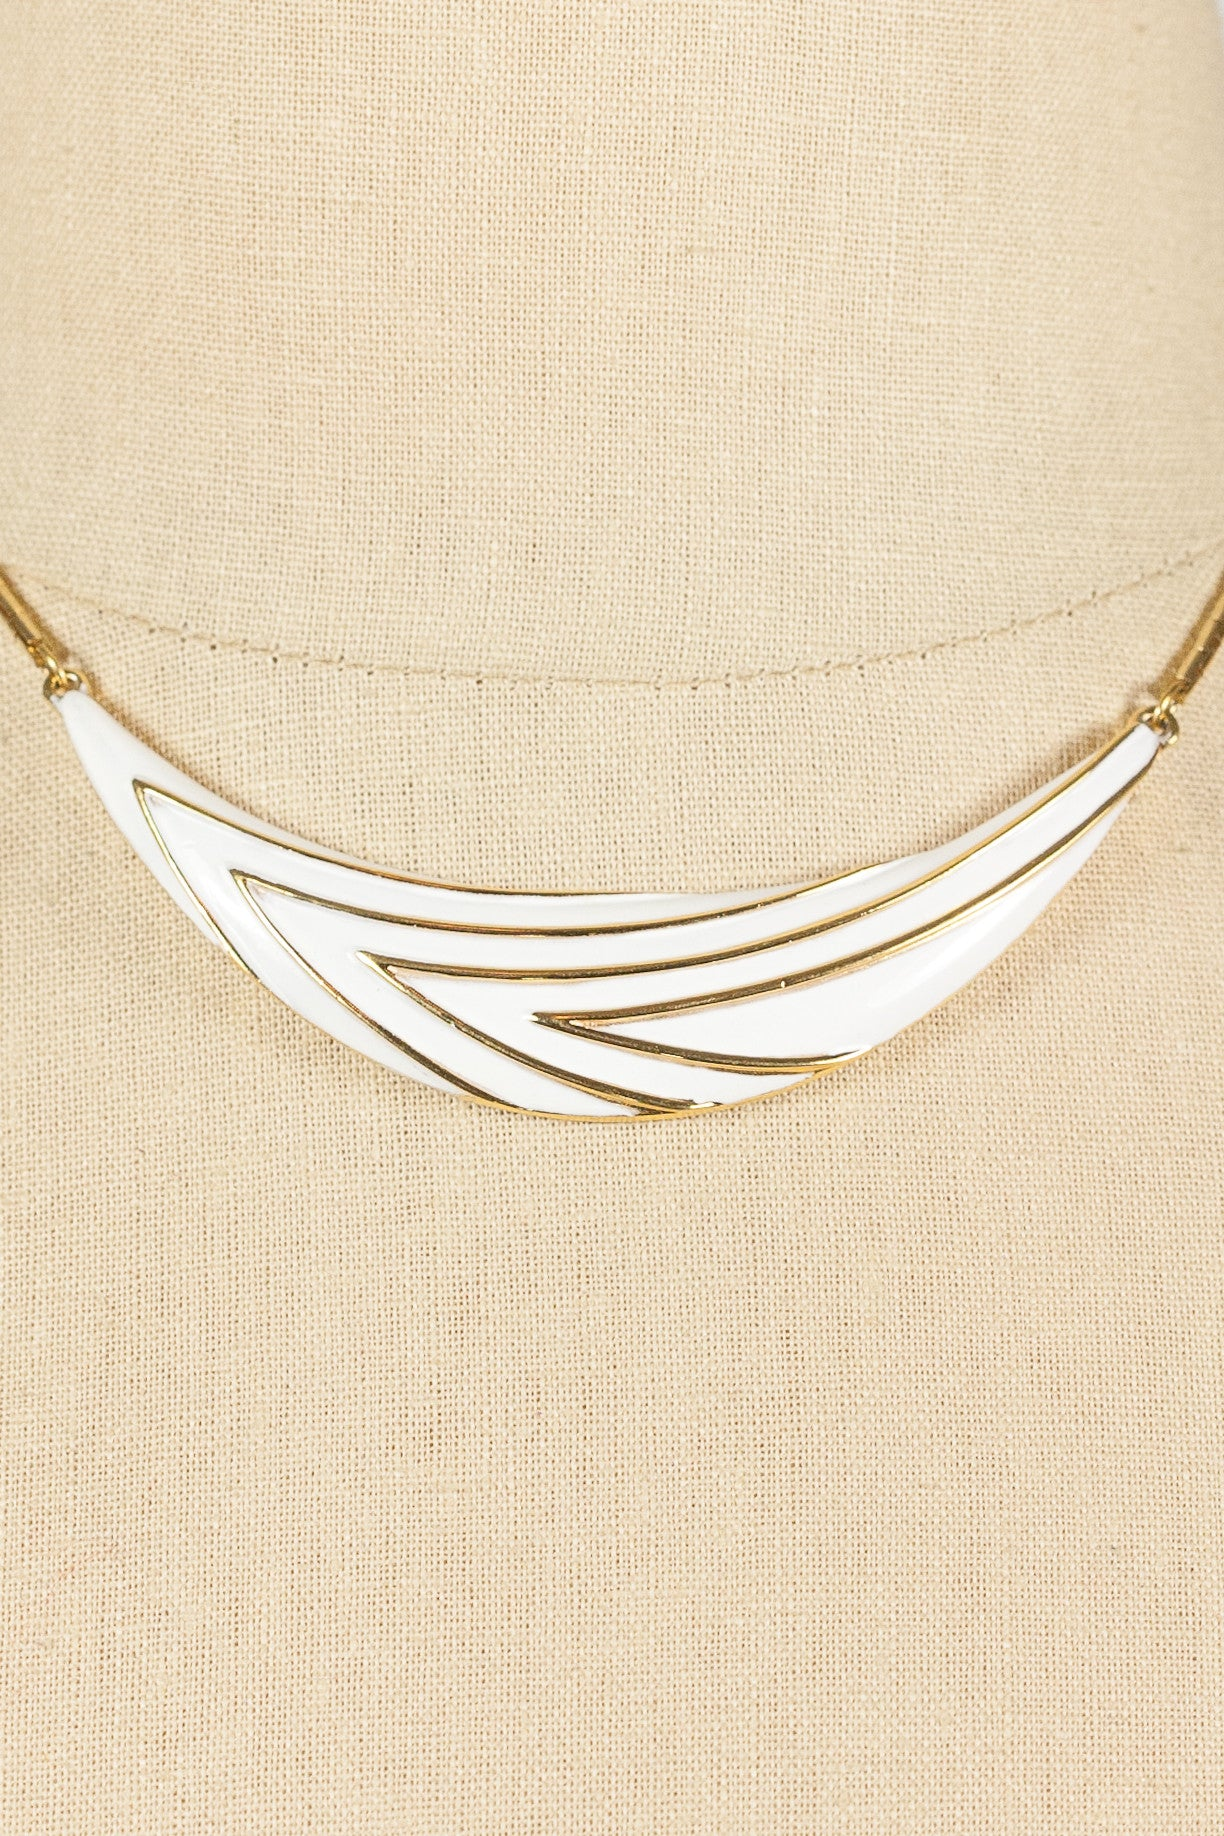 80's__Monet__White Bar Necklace